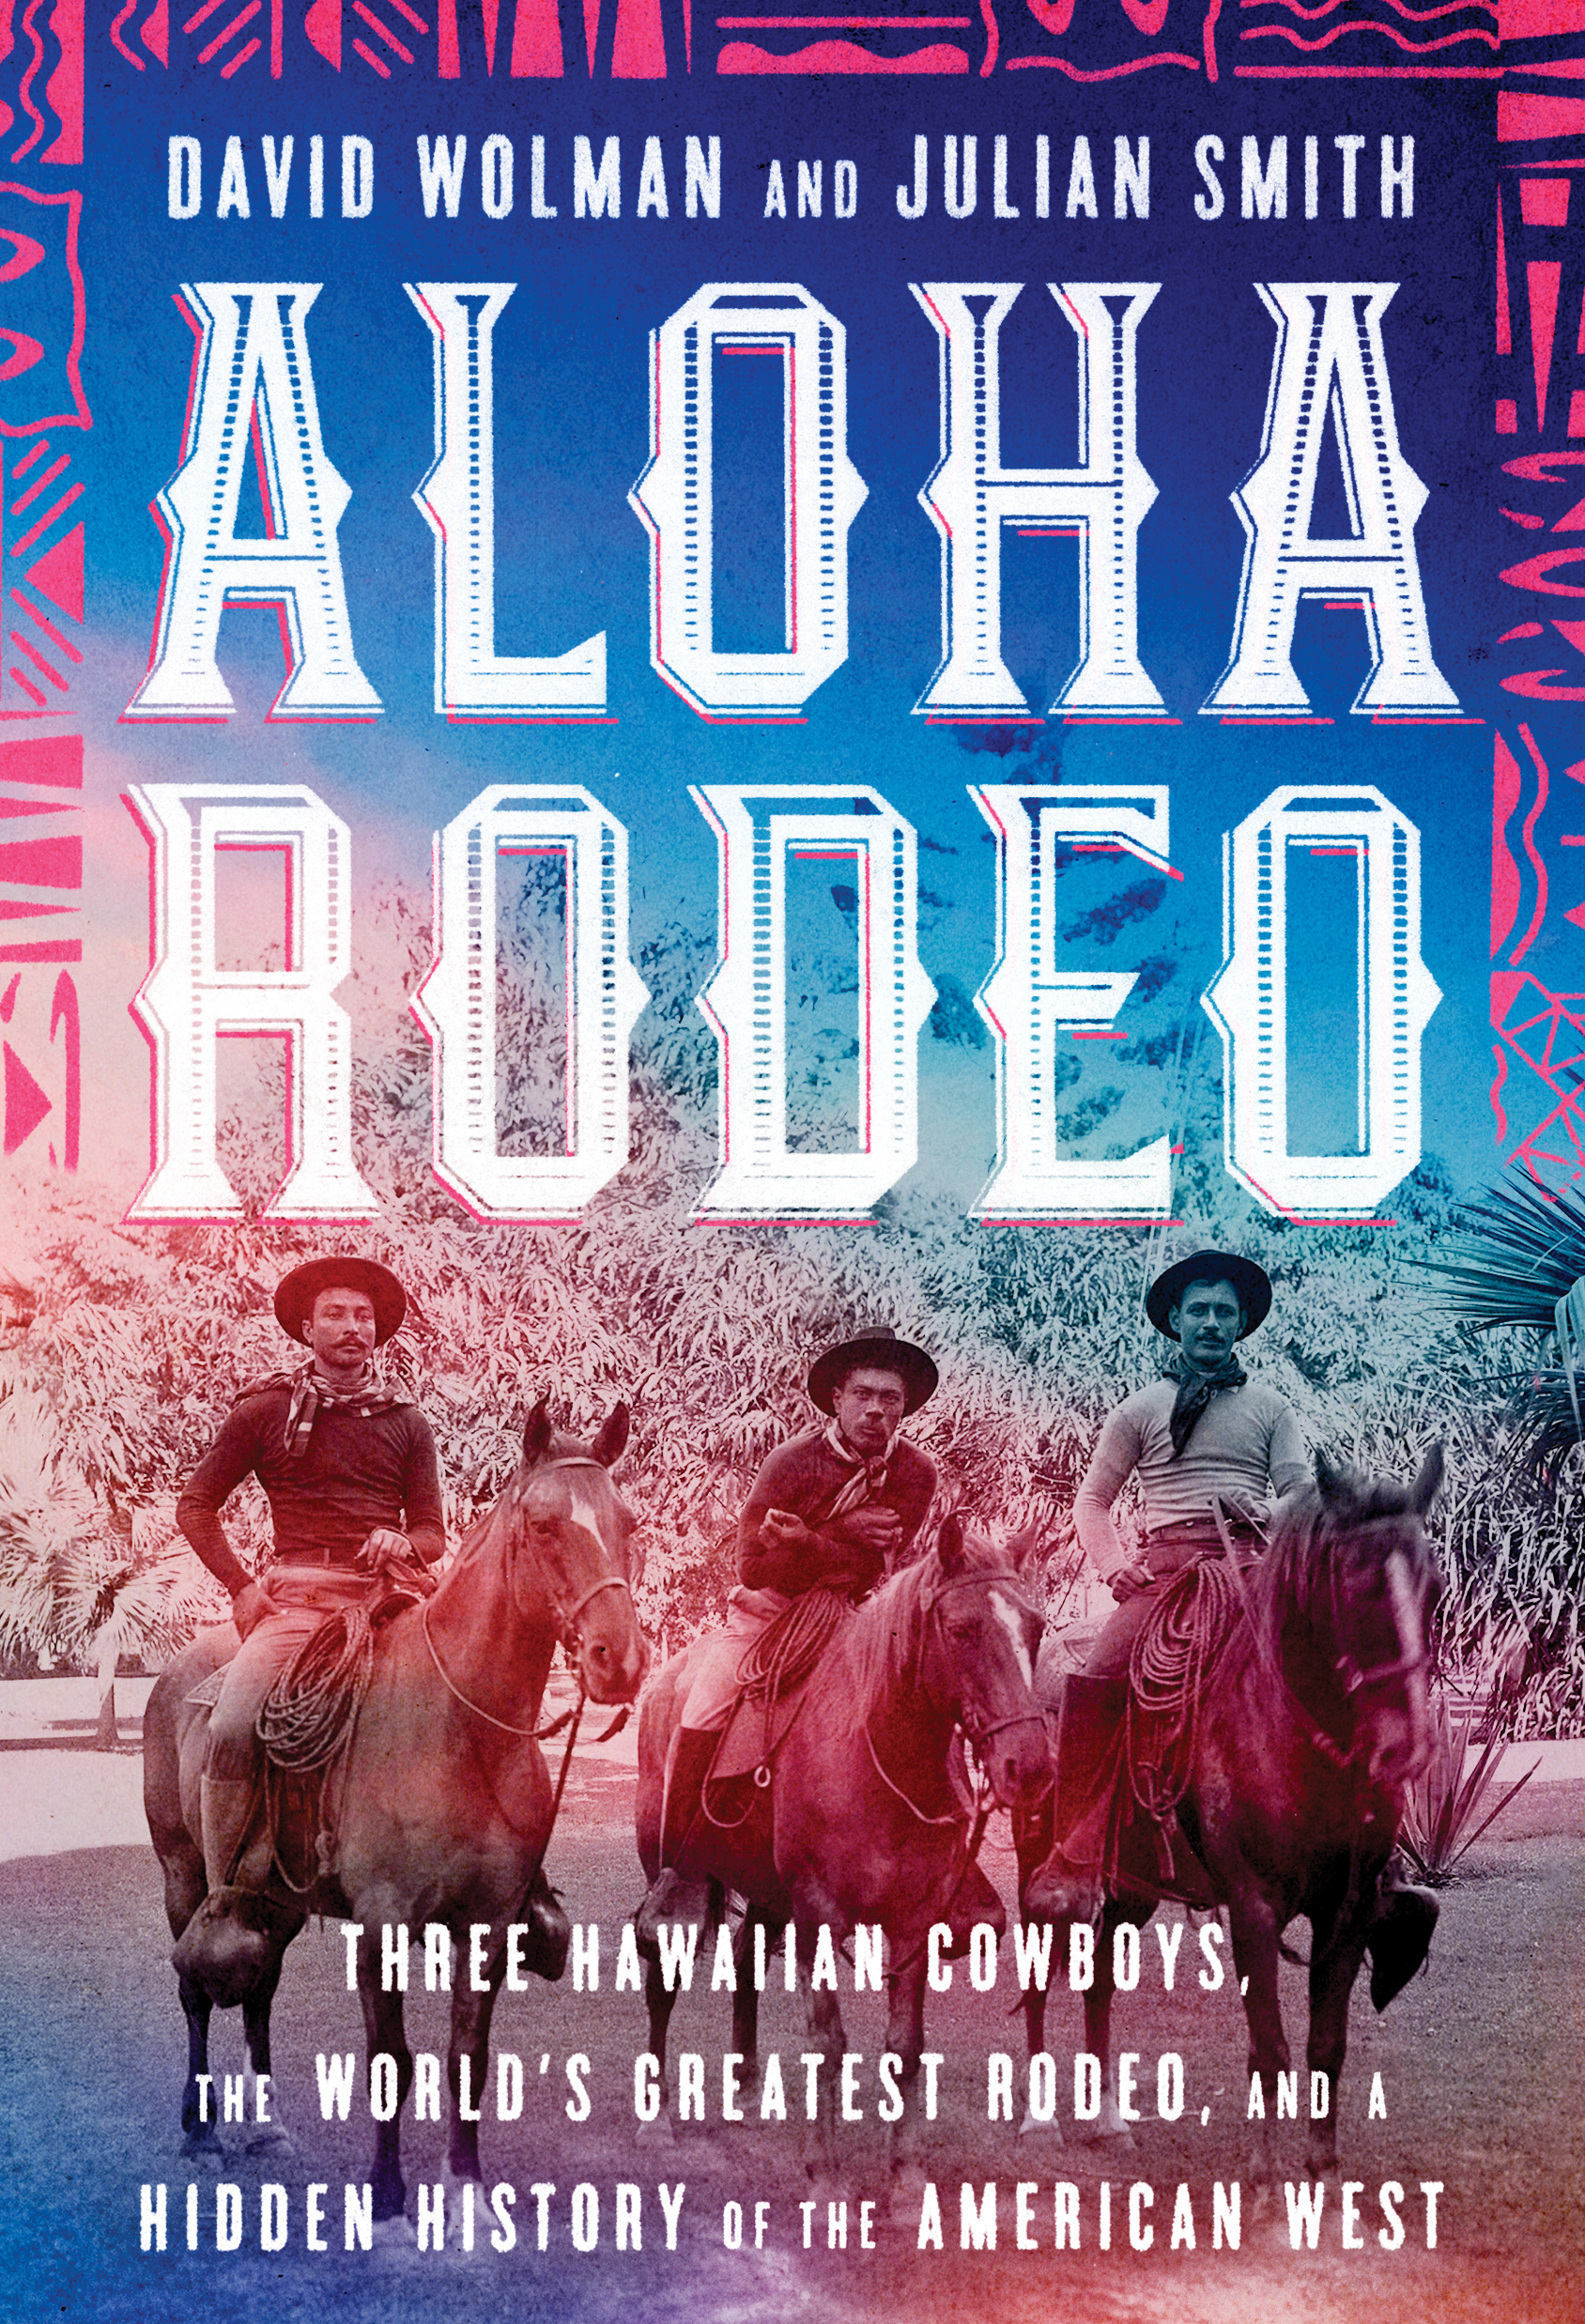 Alum David Wolman writes about Hawaiian cowboys